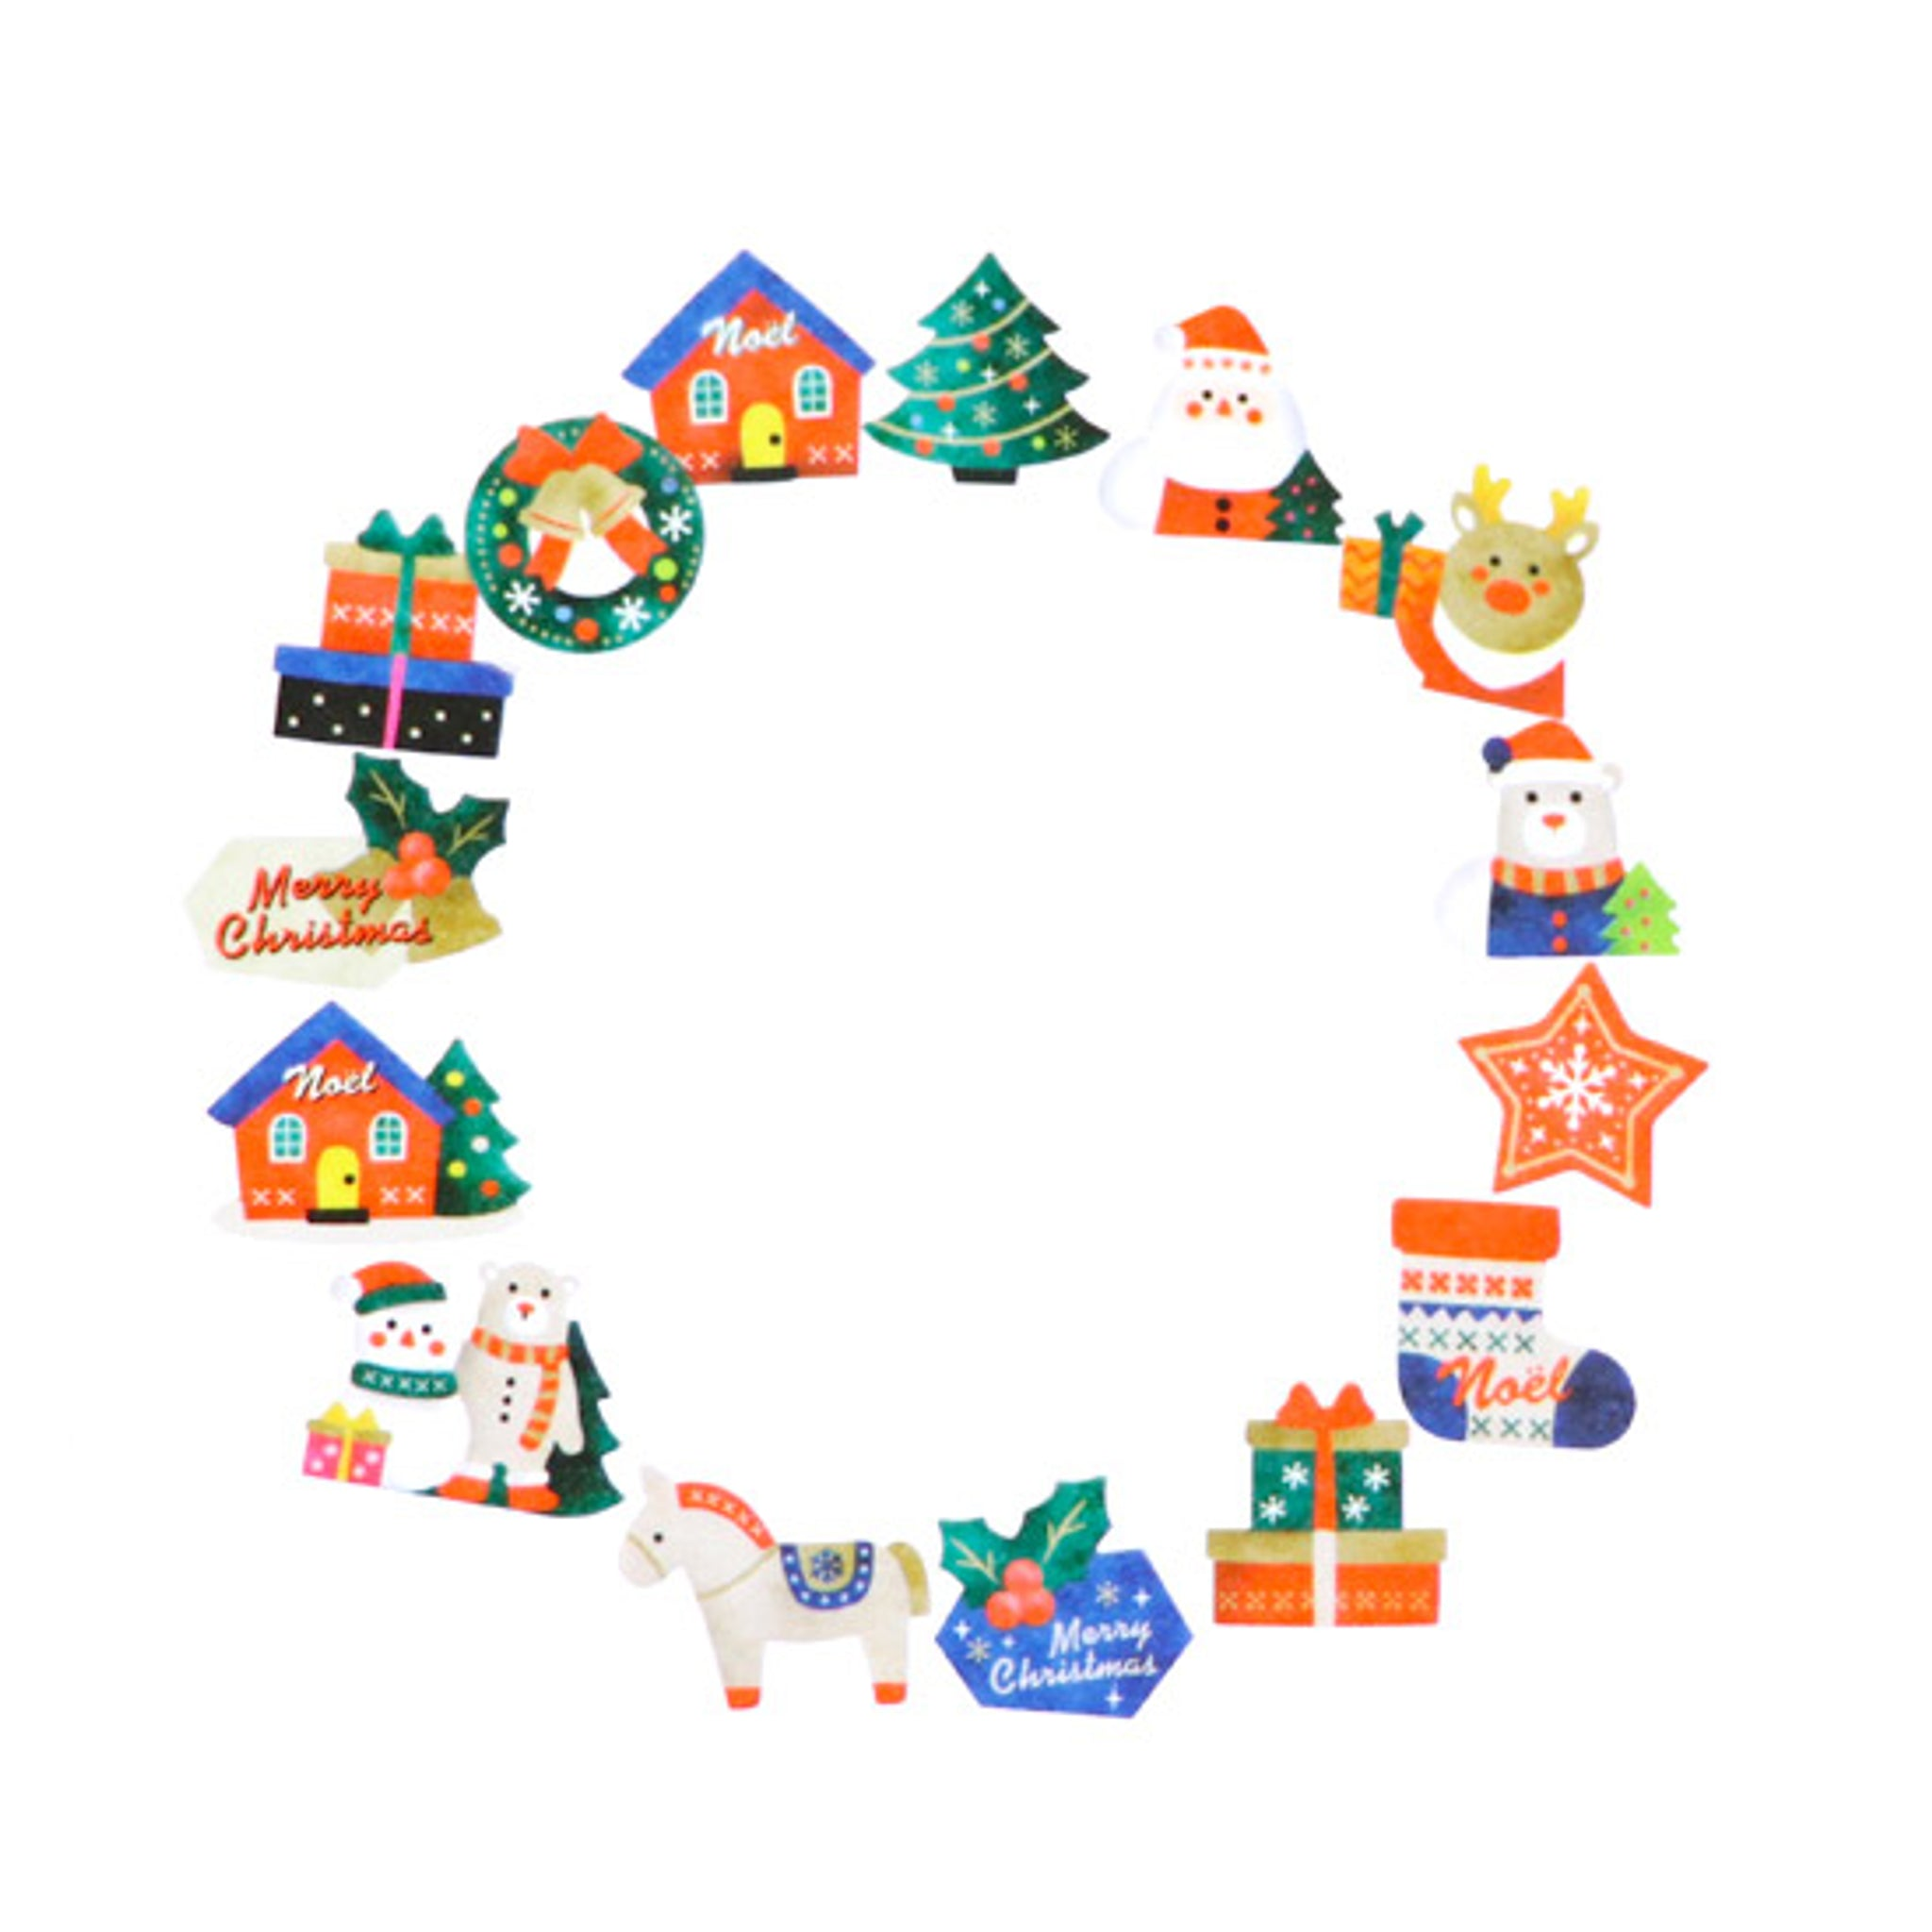 Bande Christmas Ornaments (B) Washi Roll Sticker